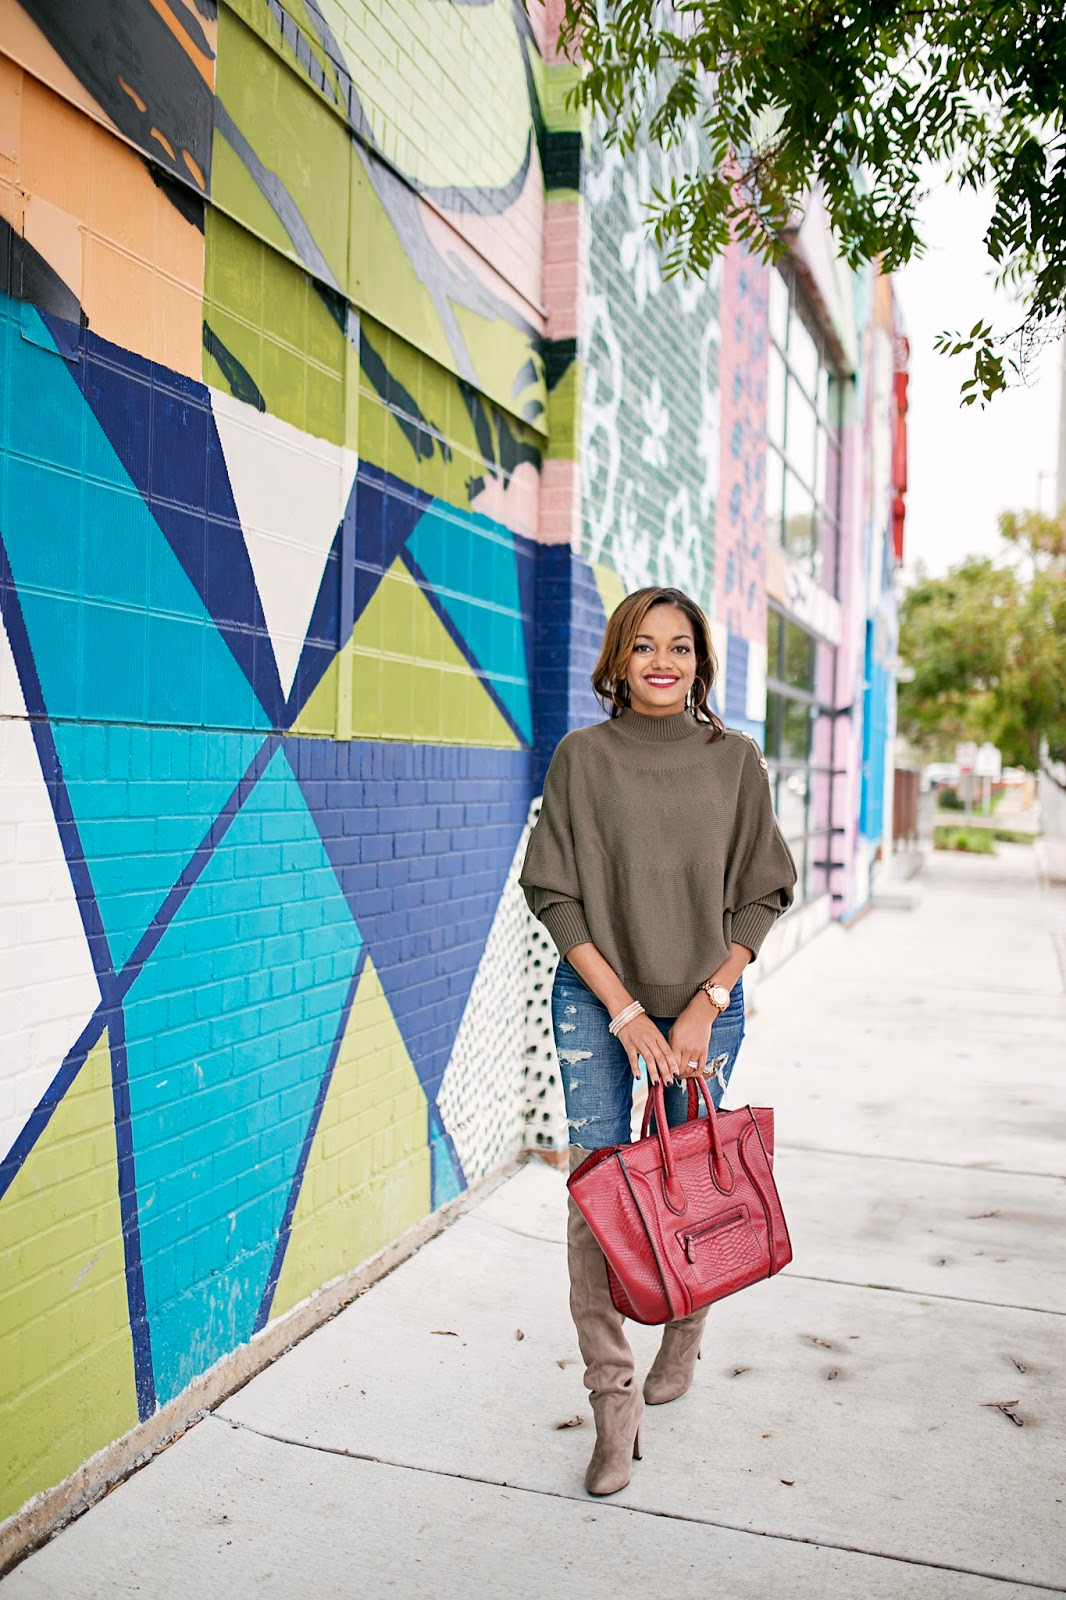 dallas fashion blogger, fashion blogger, black girl blogger, how to wear a cape, olive fashion trend, american eagle jeans, just fab, celine bag look for less, stuart weitzman highland look for less, steve madden gorgeous boot, over the knee boots